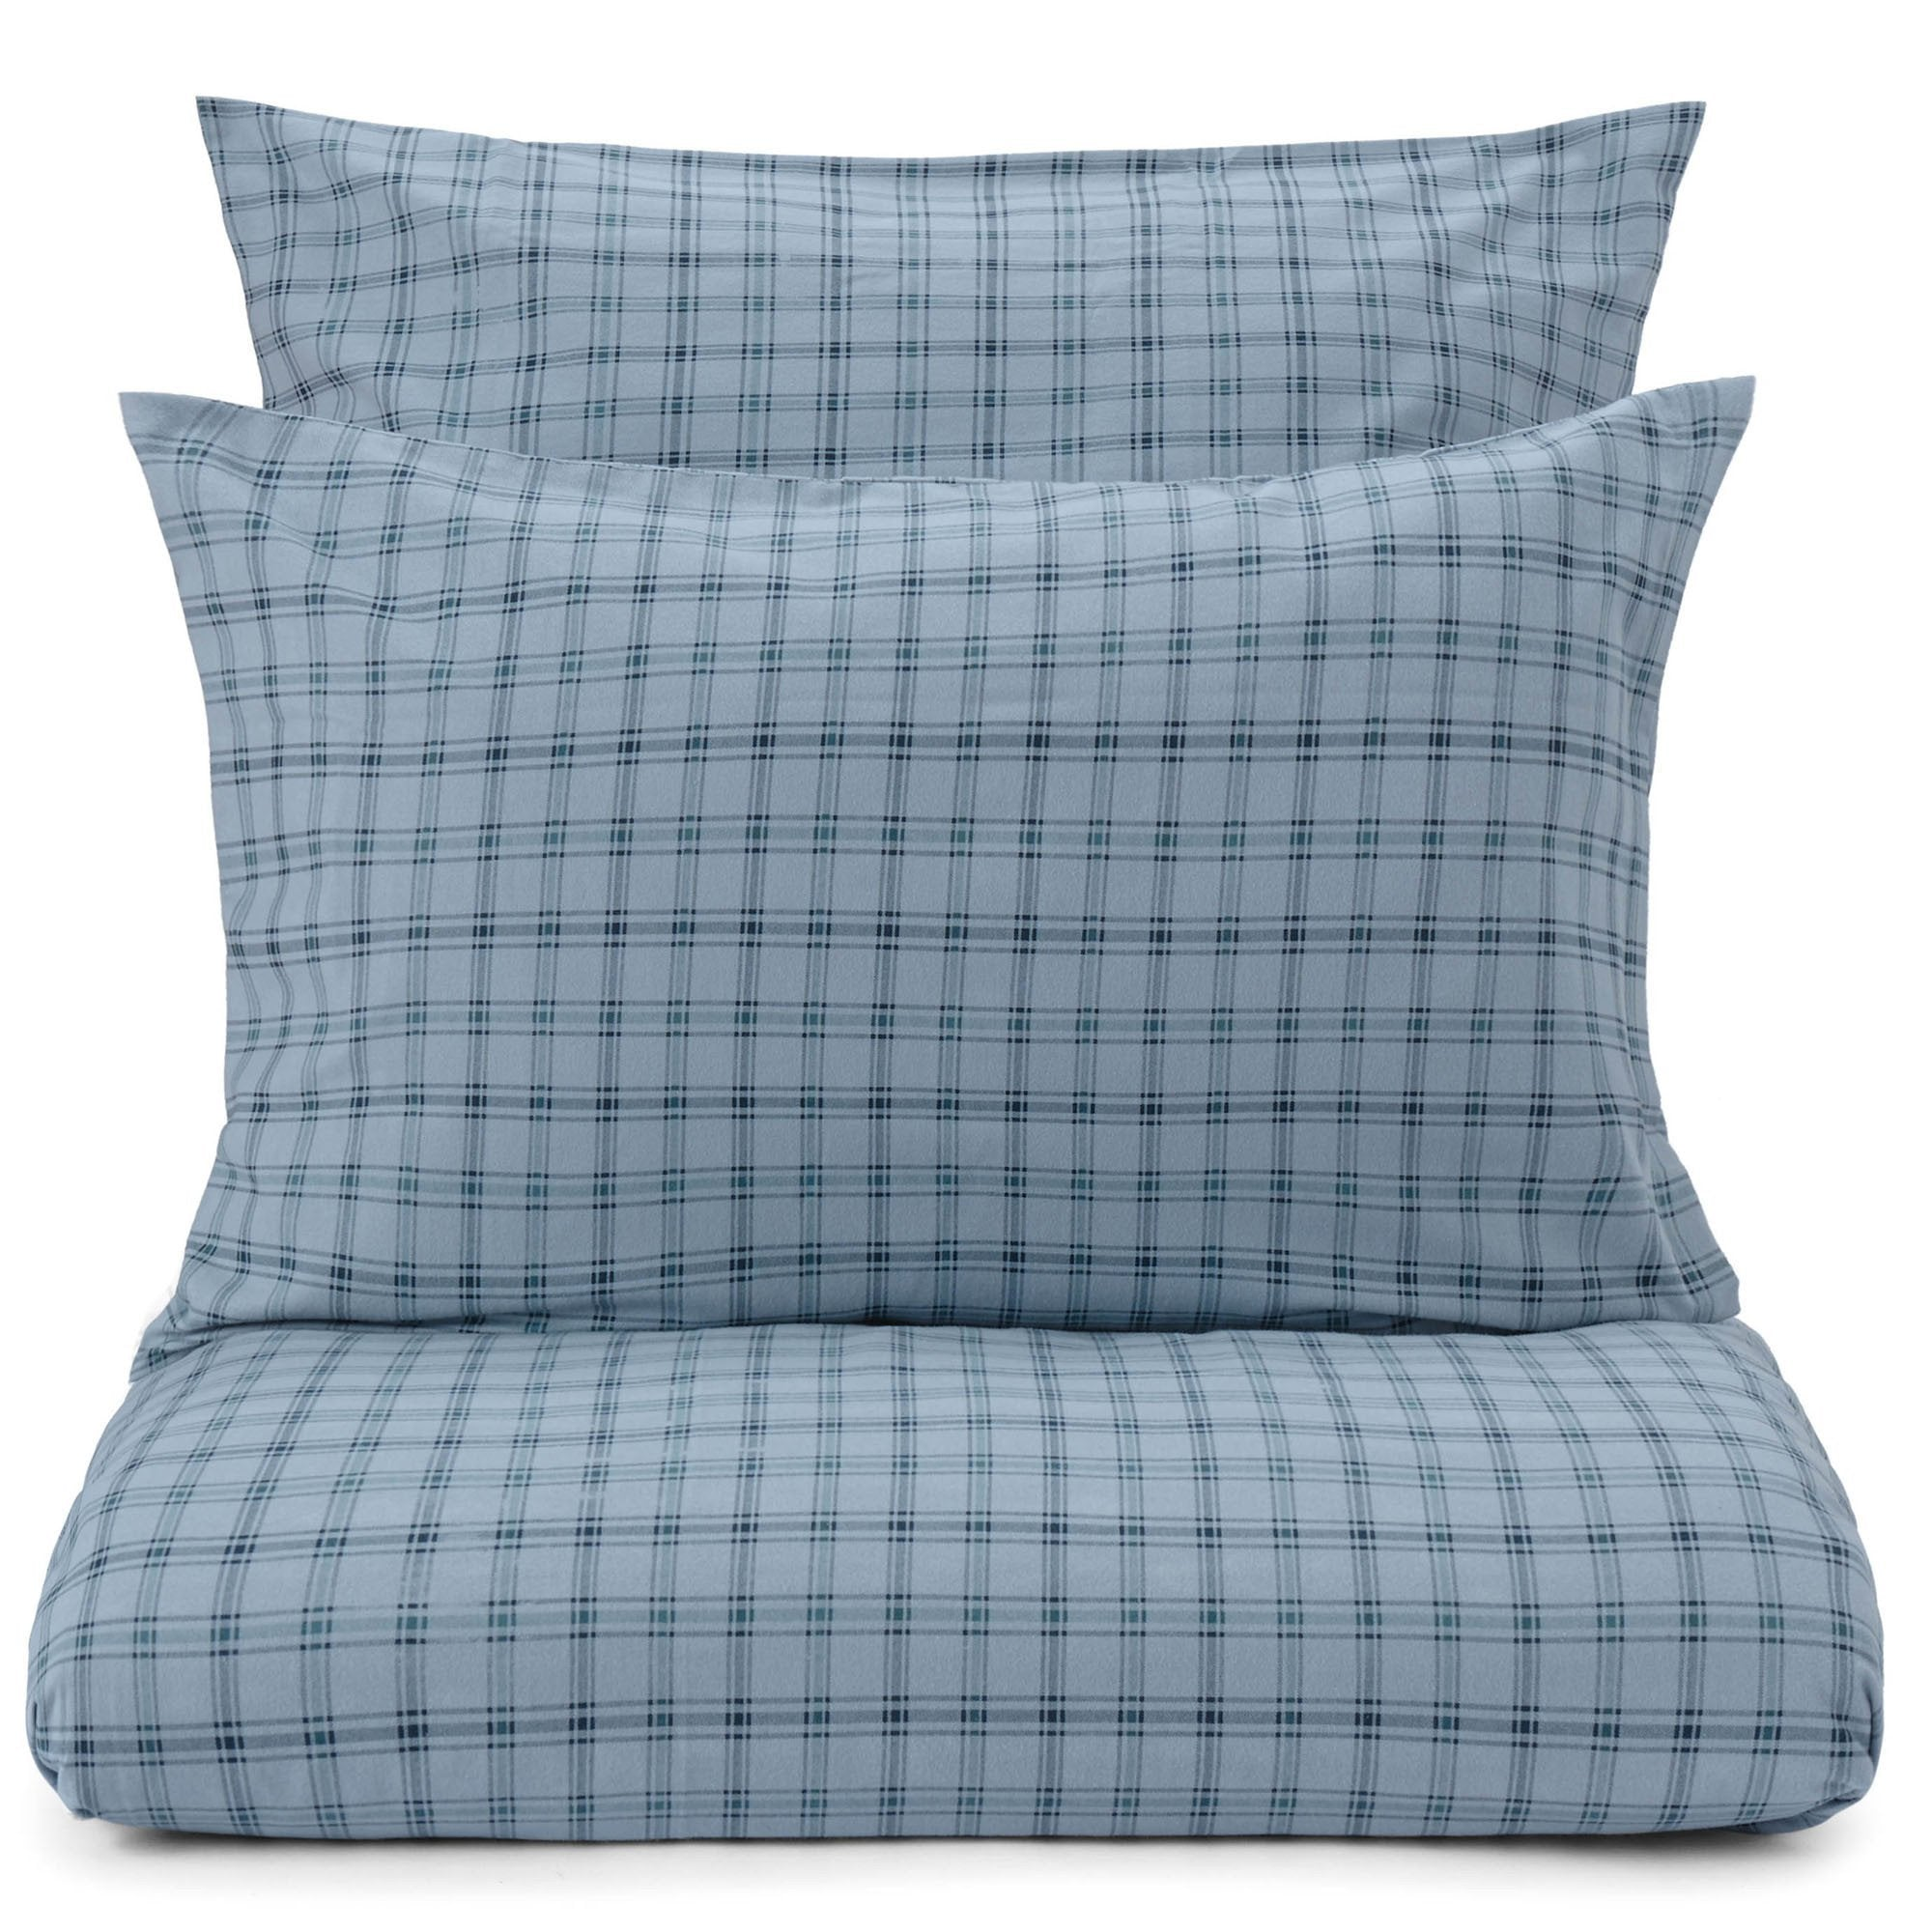 Kotja duvet cover, light blue & teal & dark blue, 100% cotton